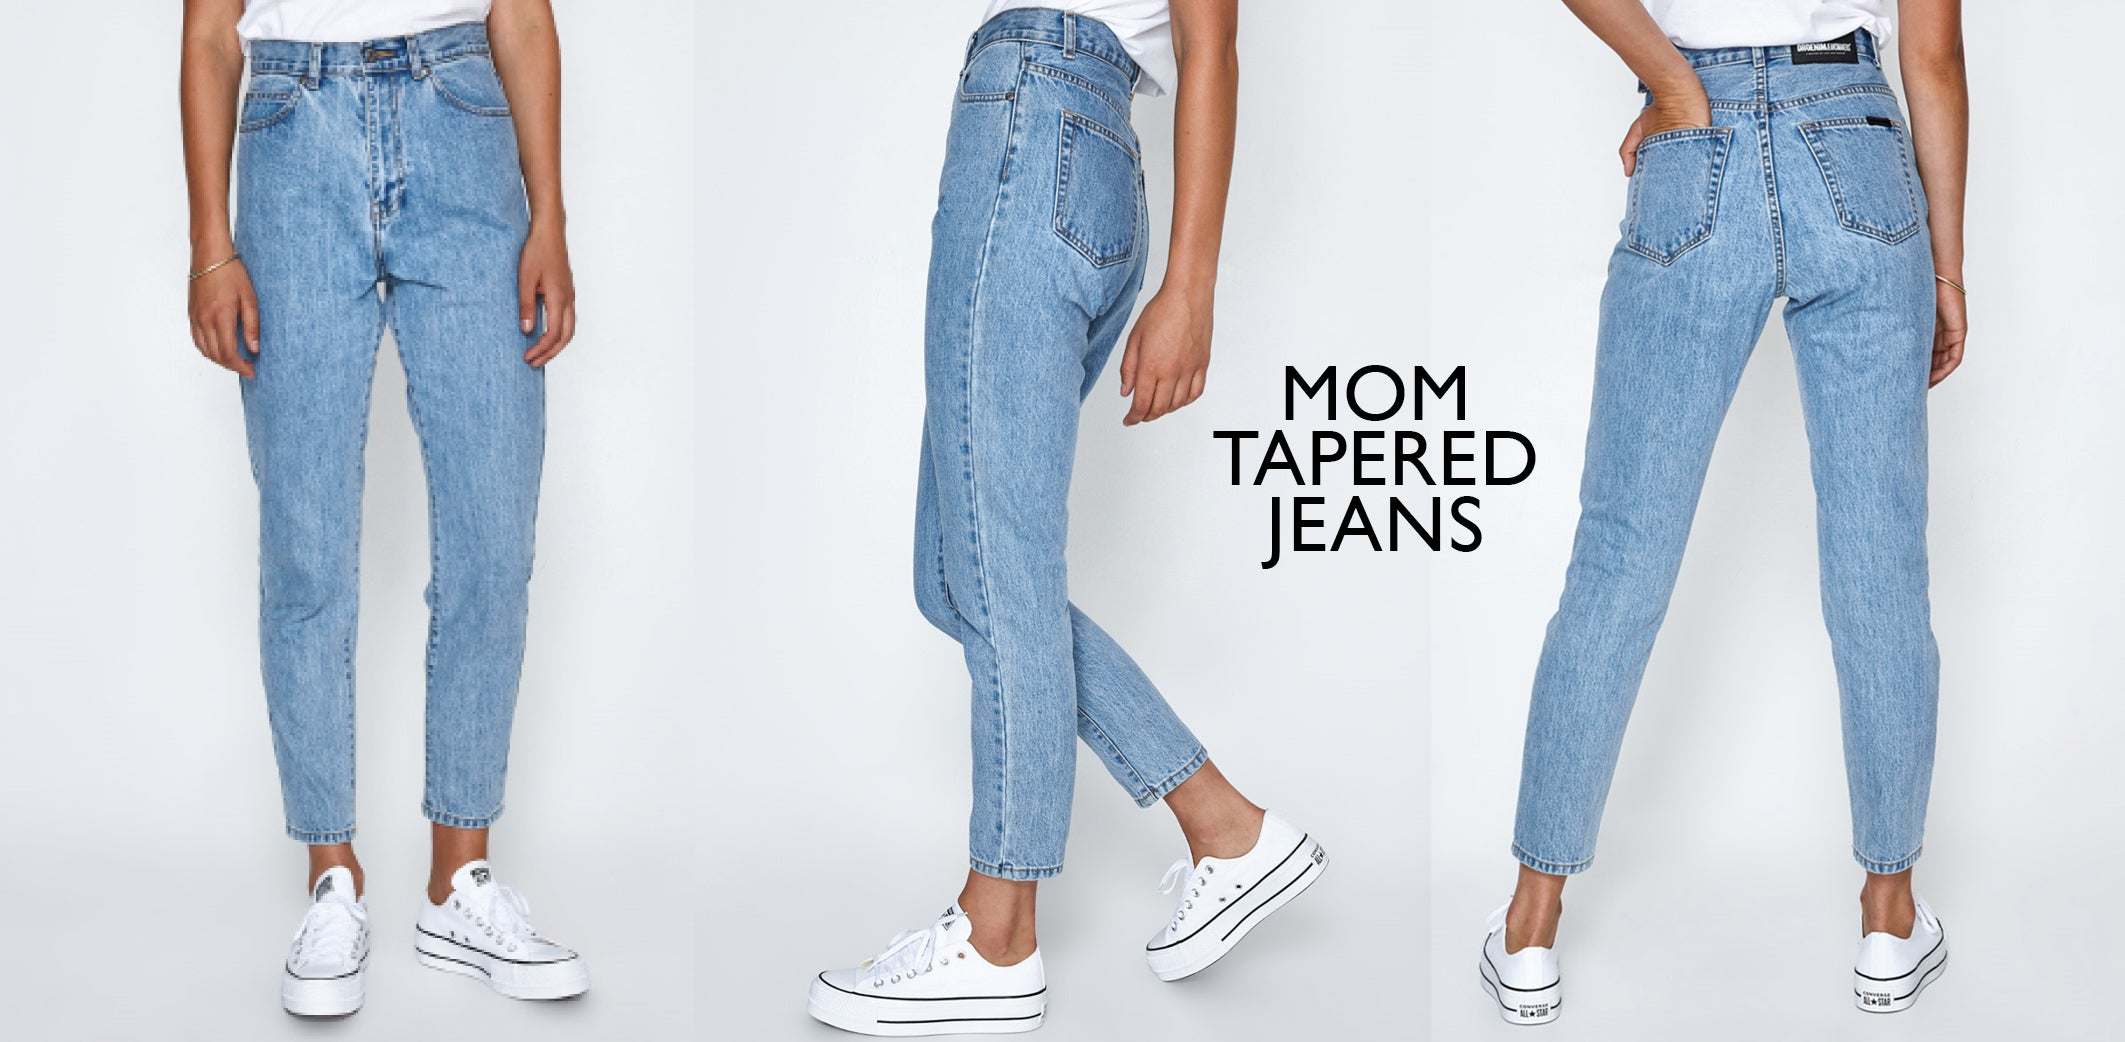 General Pants - Mom jeans Dr denim